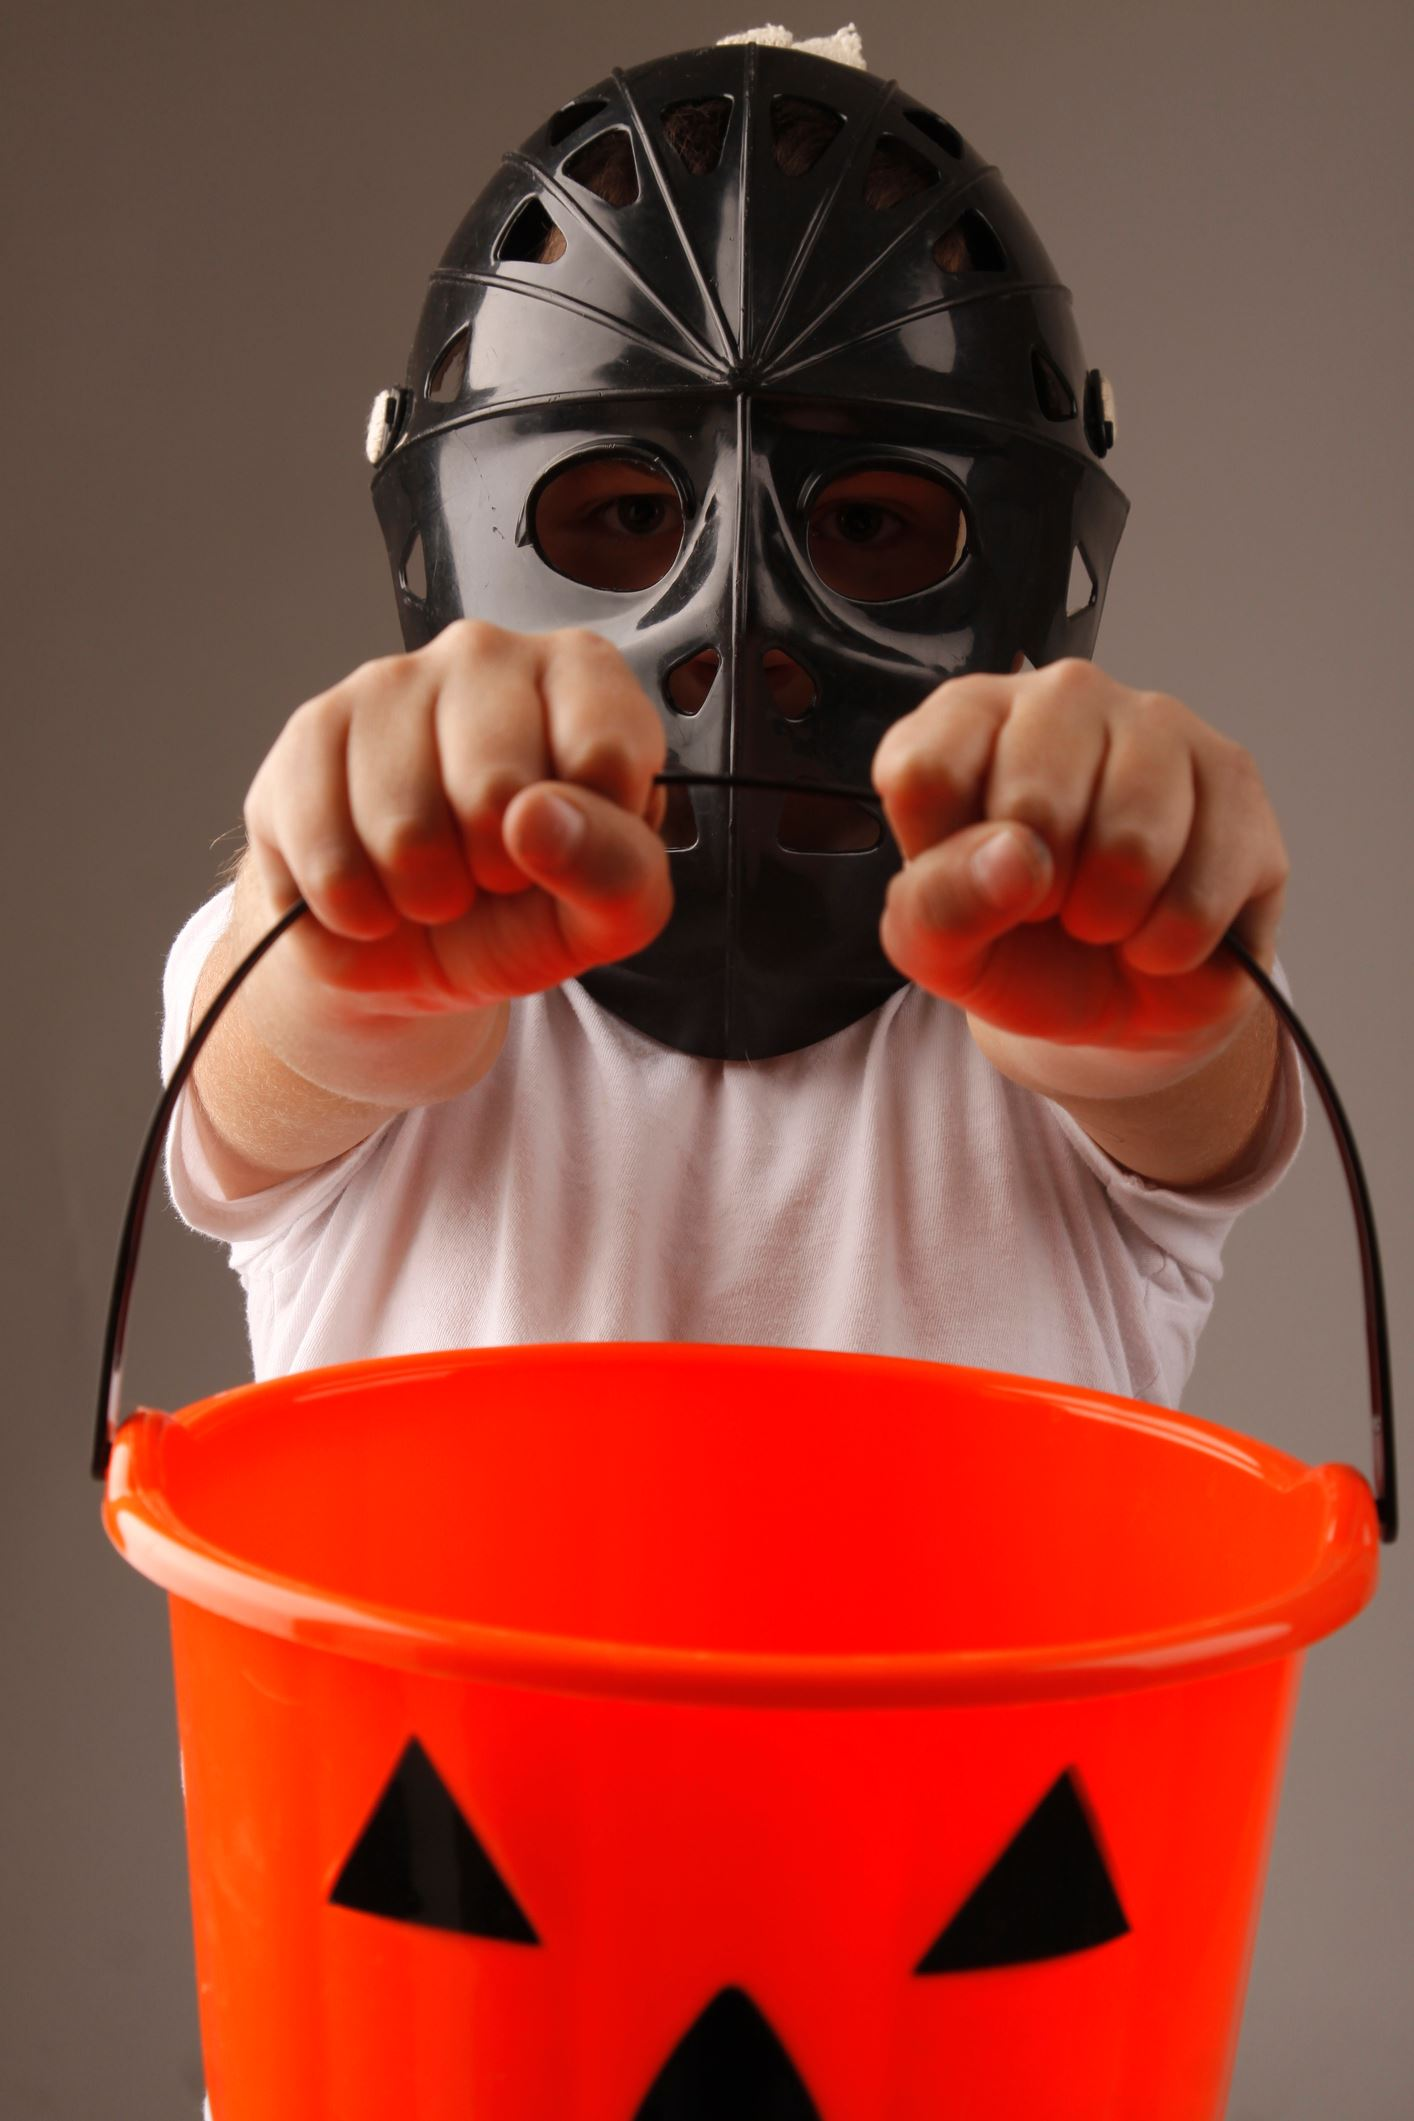 Photo of child dressed in a Halloween costume holding bucket for candy.